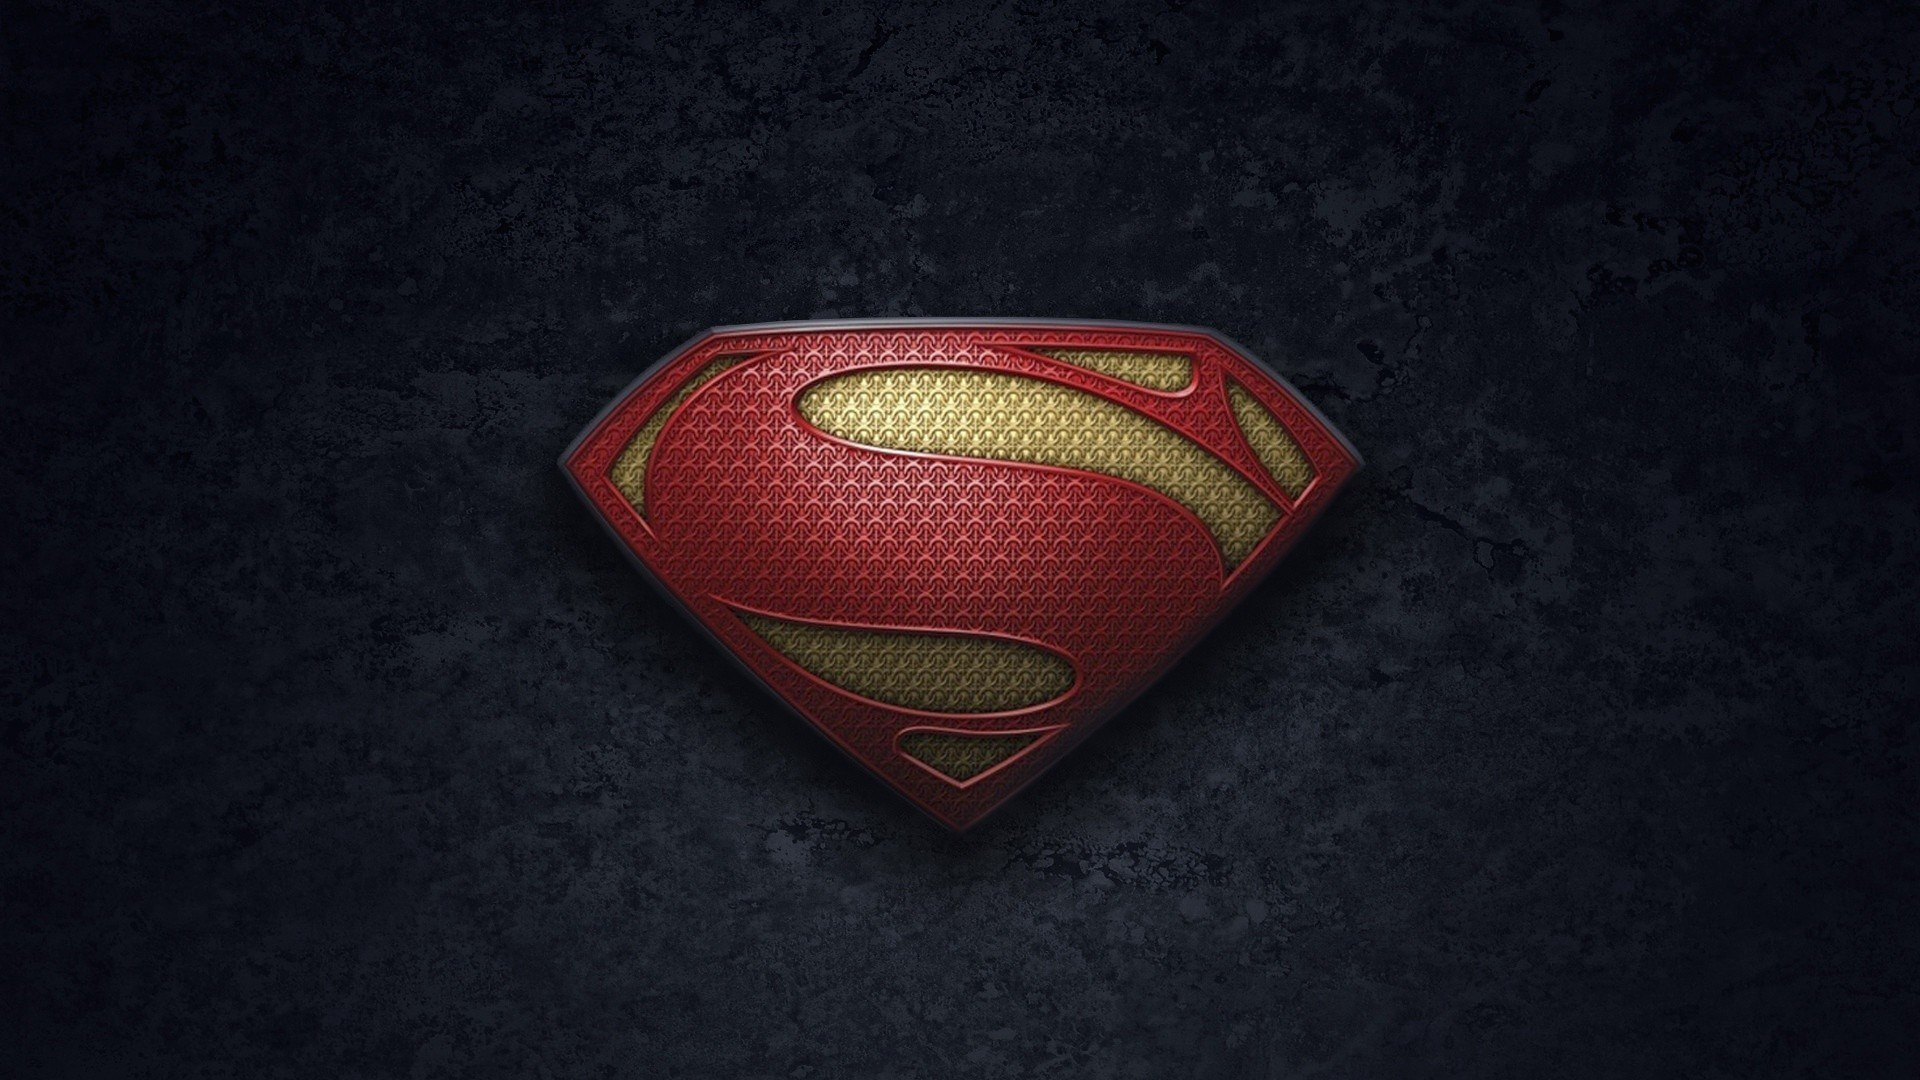 Logo Superman Wallpaper HD Free Download | PixelsTalk Net